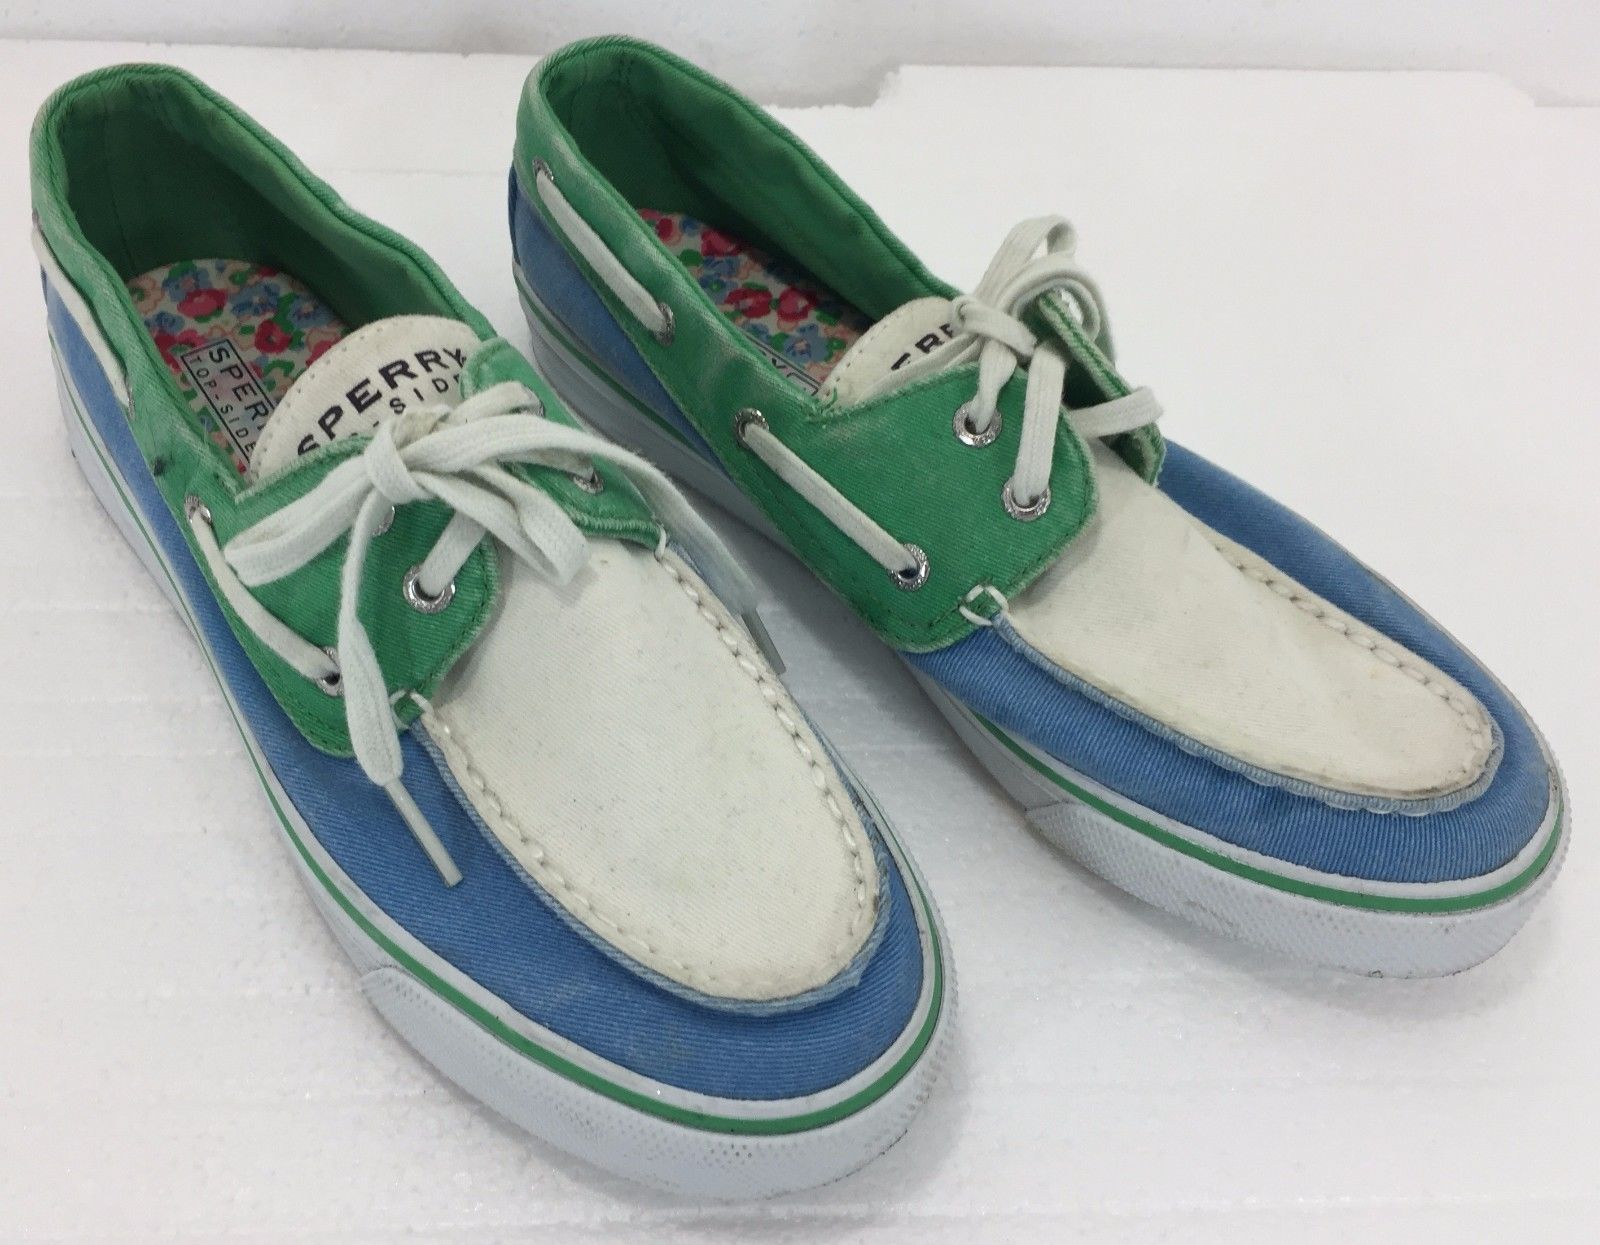 da53196786fd1 Sperry Top-Sider Womens 7.5M Blue Green and 50 similar items